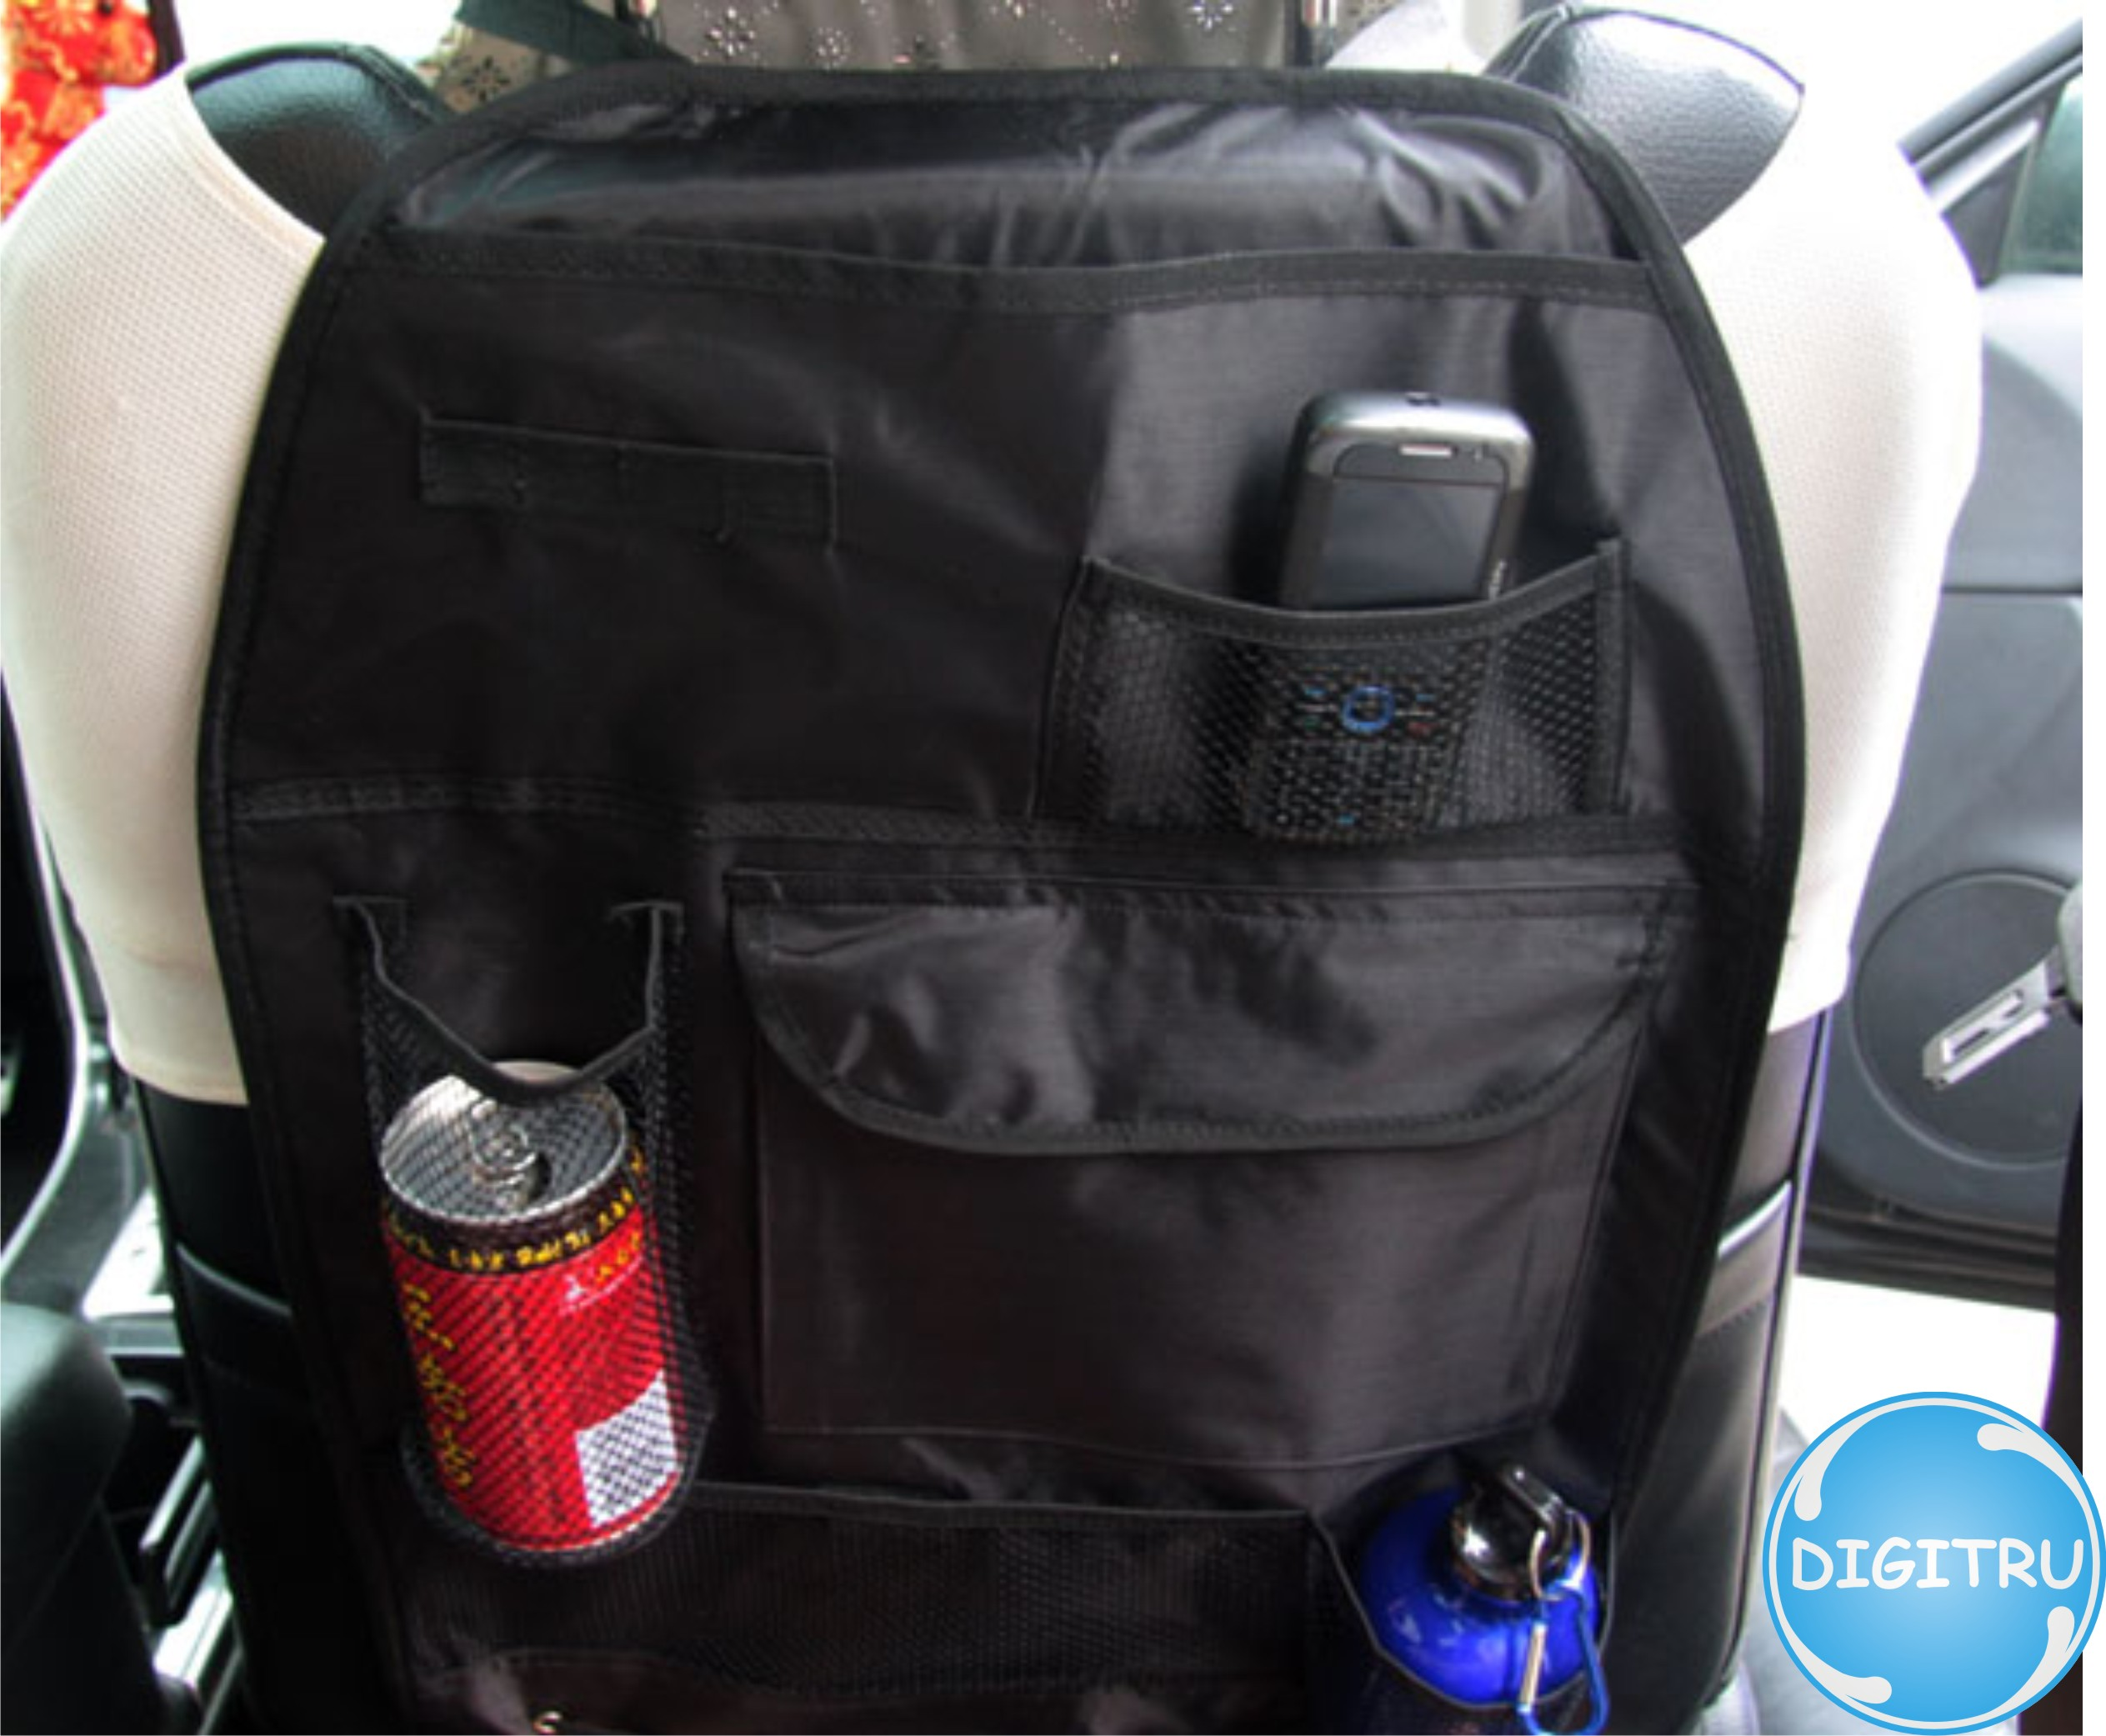 Checking Car Seat Needs To Be In Bag